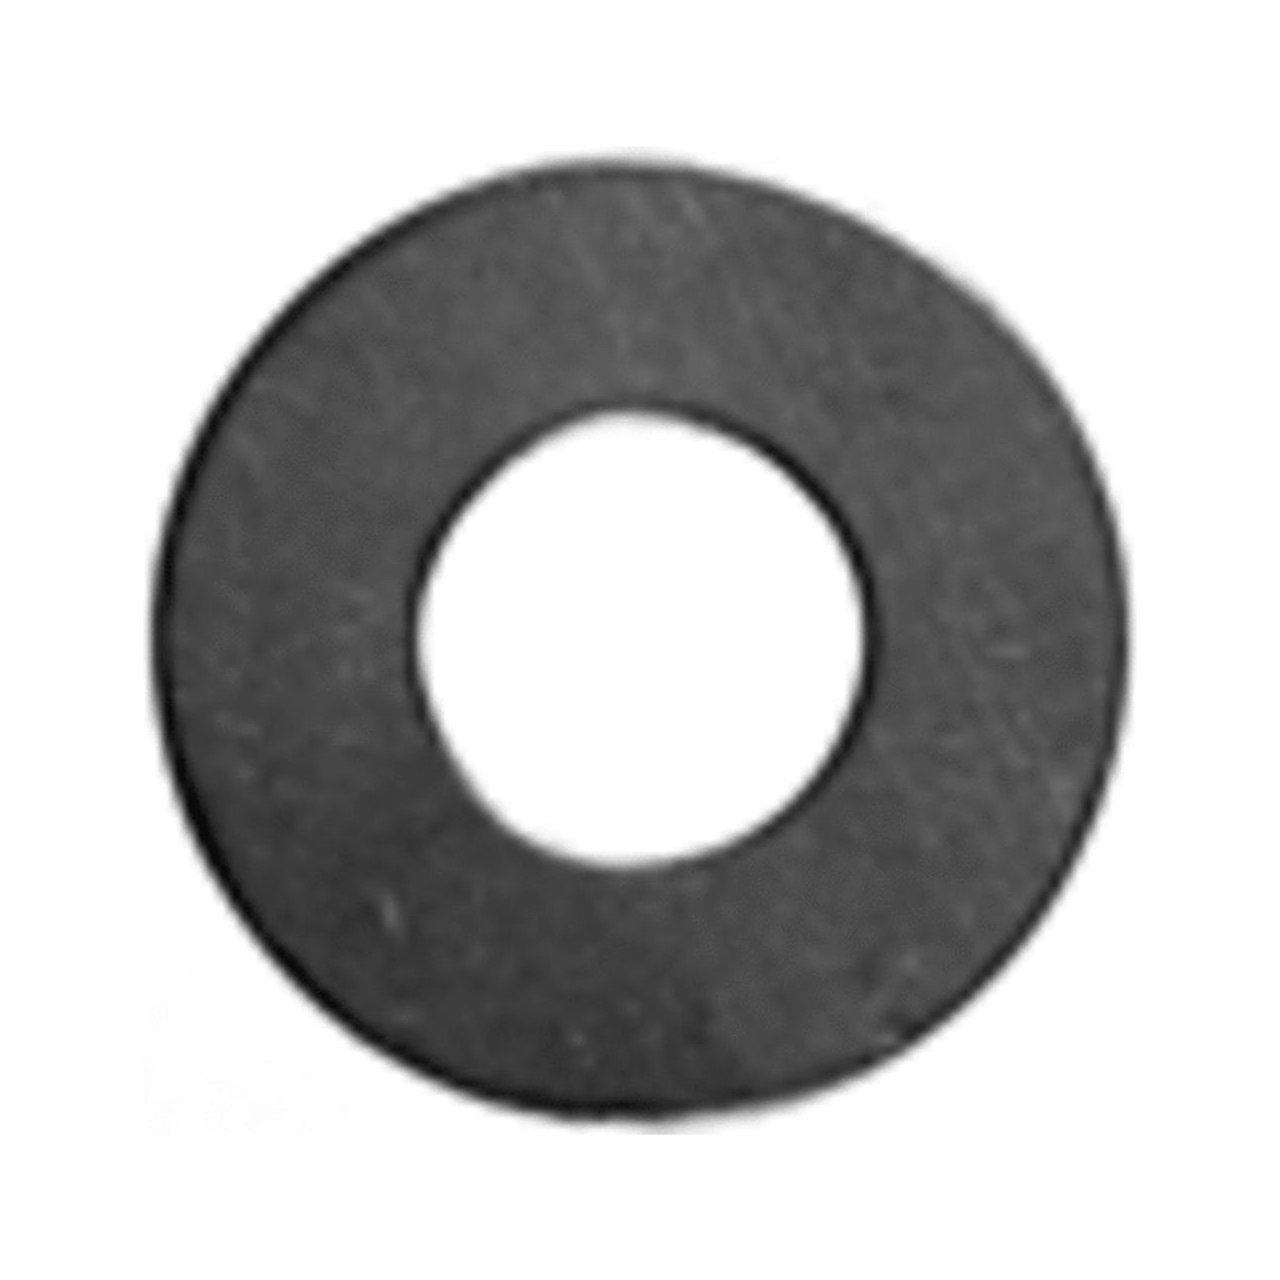 Hillman Flat Ss Washer 1/4 '' Stainless Steel 100/Box